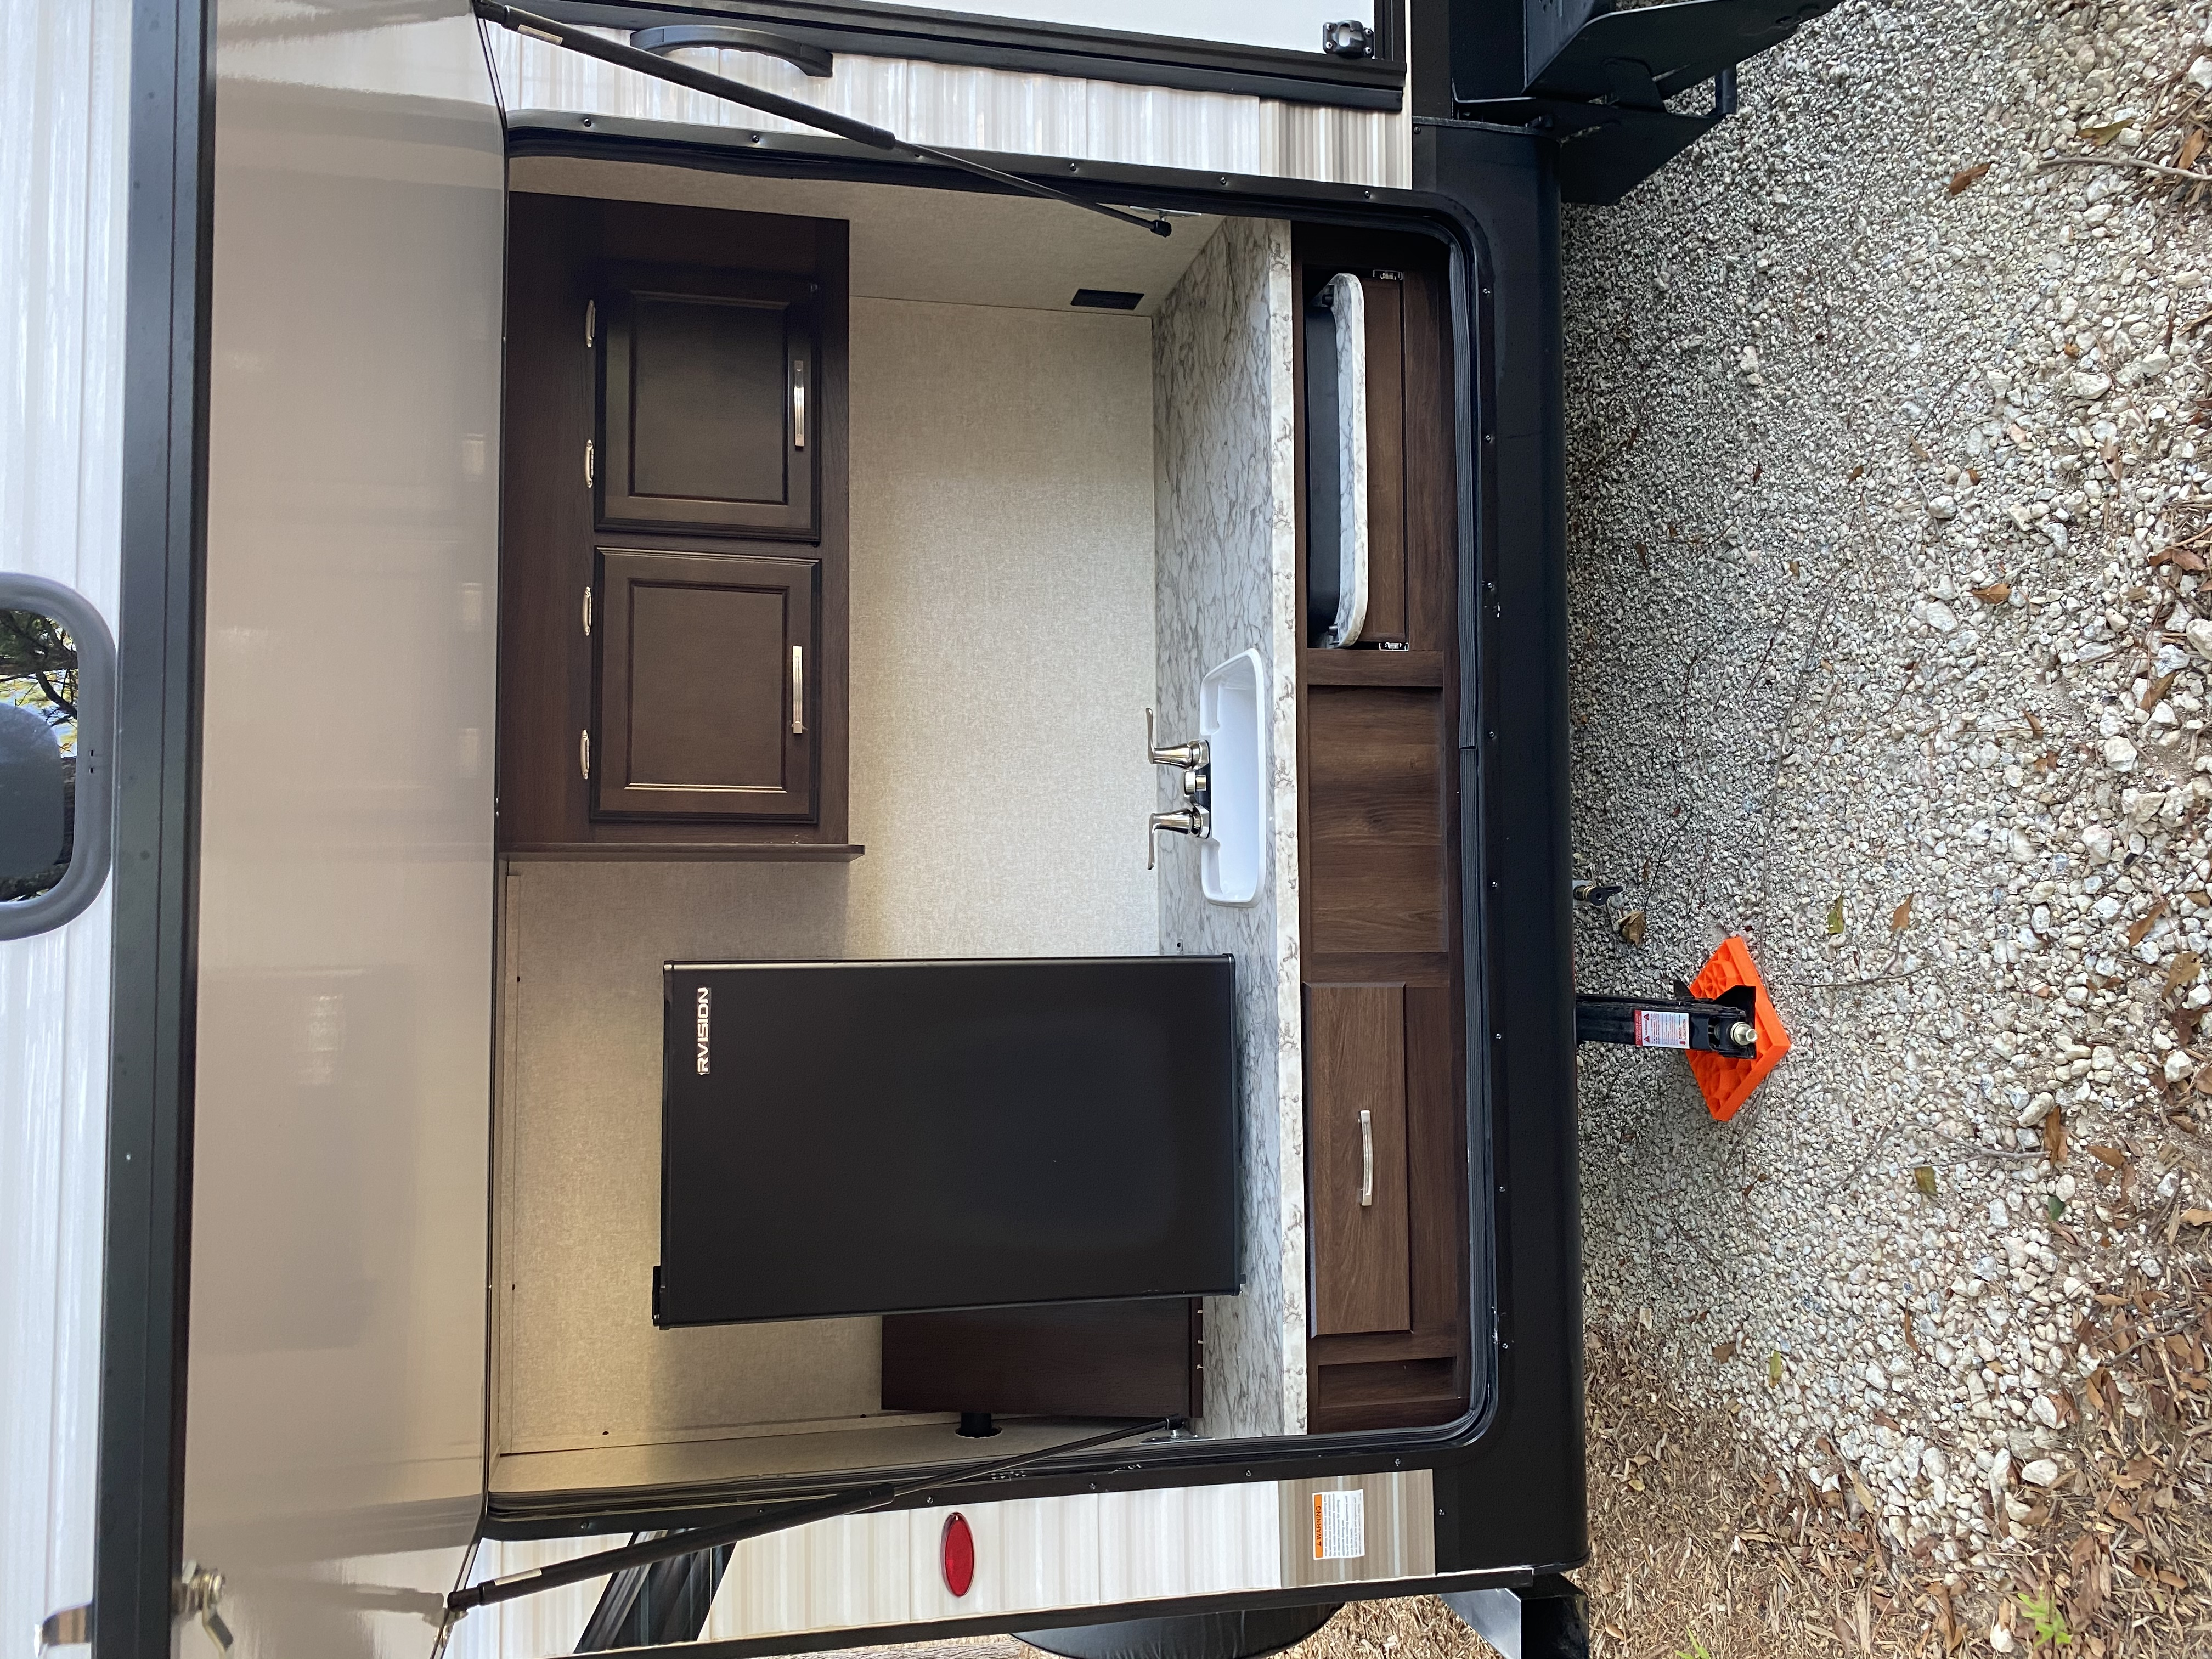 Outdoor Kitchen with fridge, sink, and cooktop. Jayco Jay Flight 2020